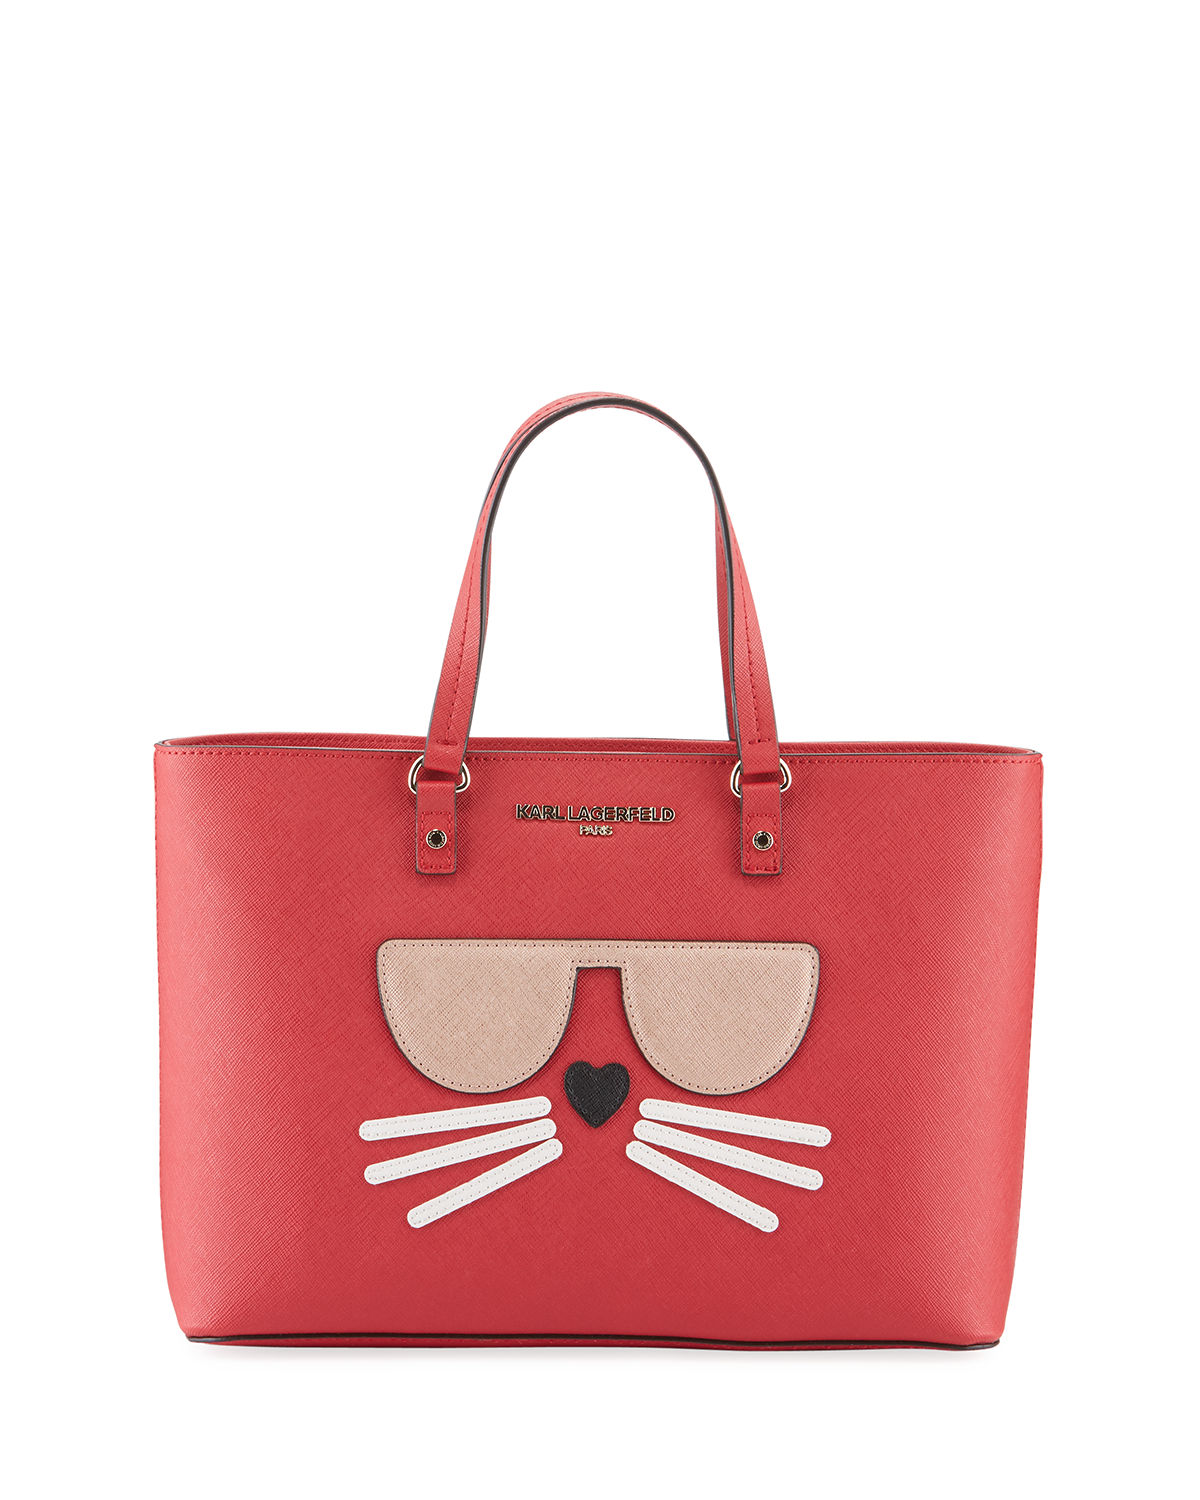 Karl Lagerfeld Totes MAYBELLE SAFFIANO LEATHER CHOUPETTE TOTE BAG